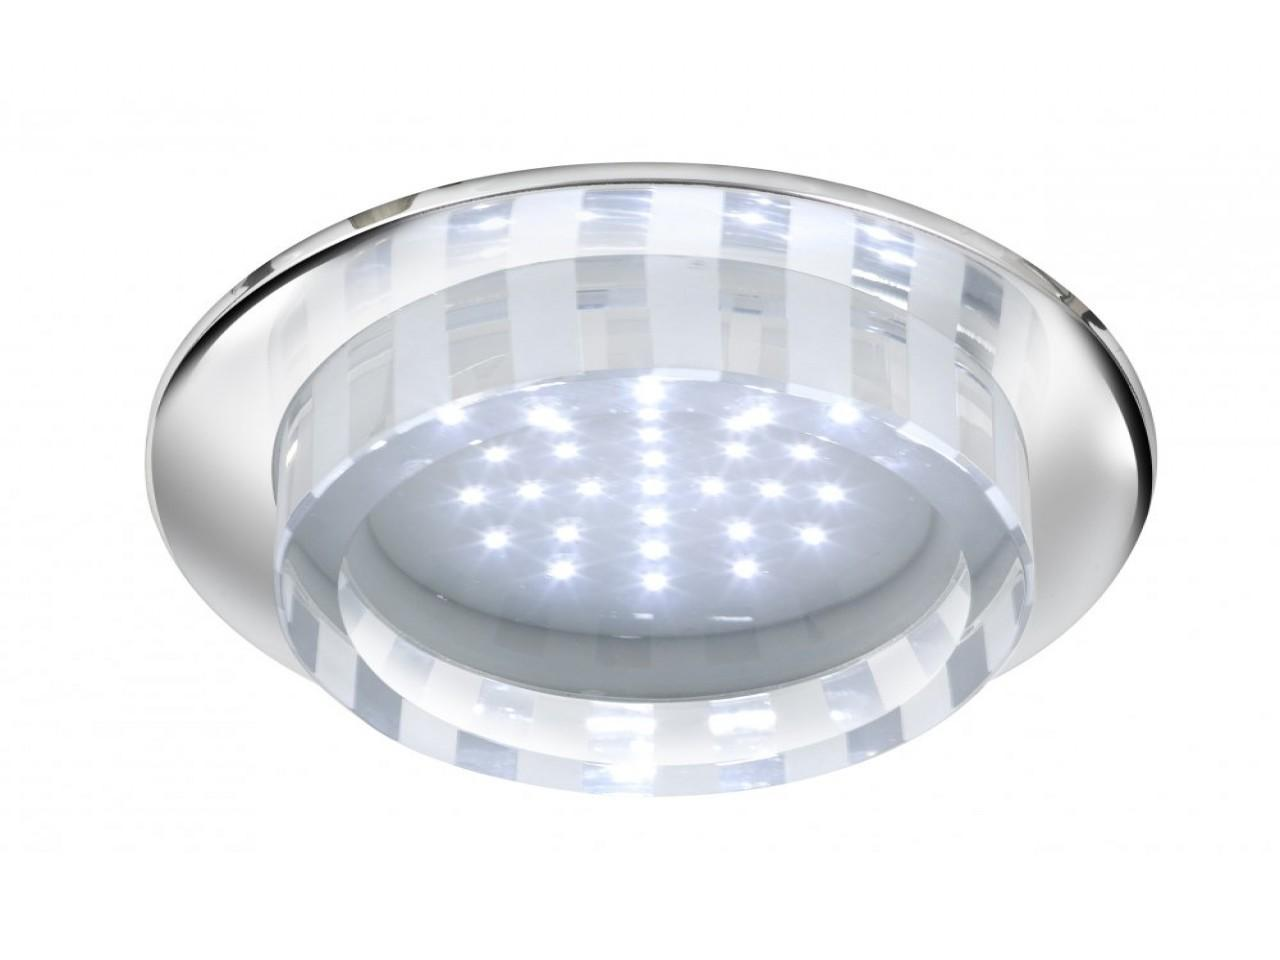 Recessed Led Light Fixtures Fixture